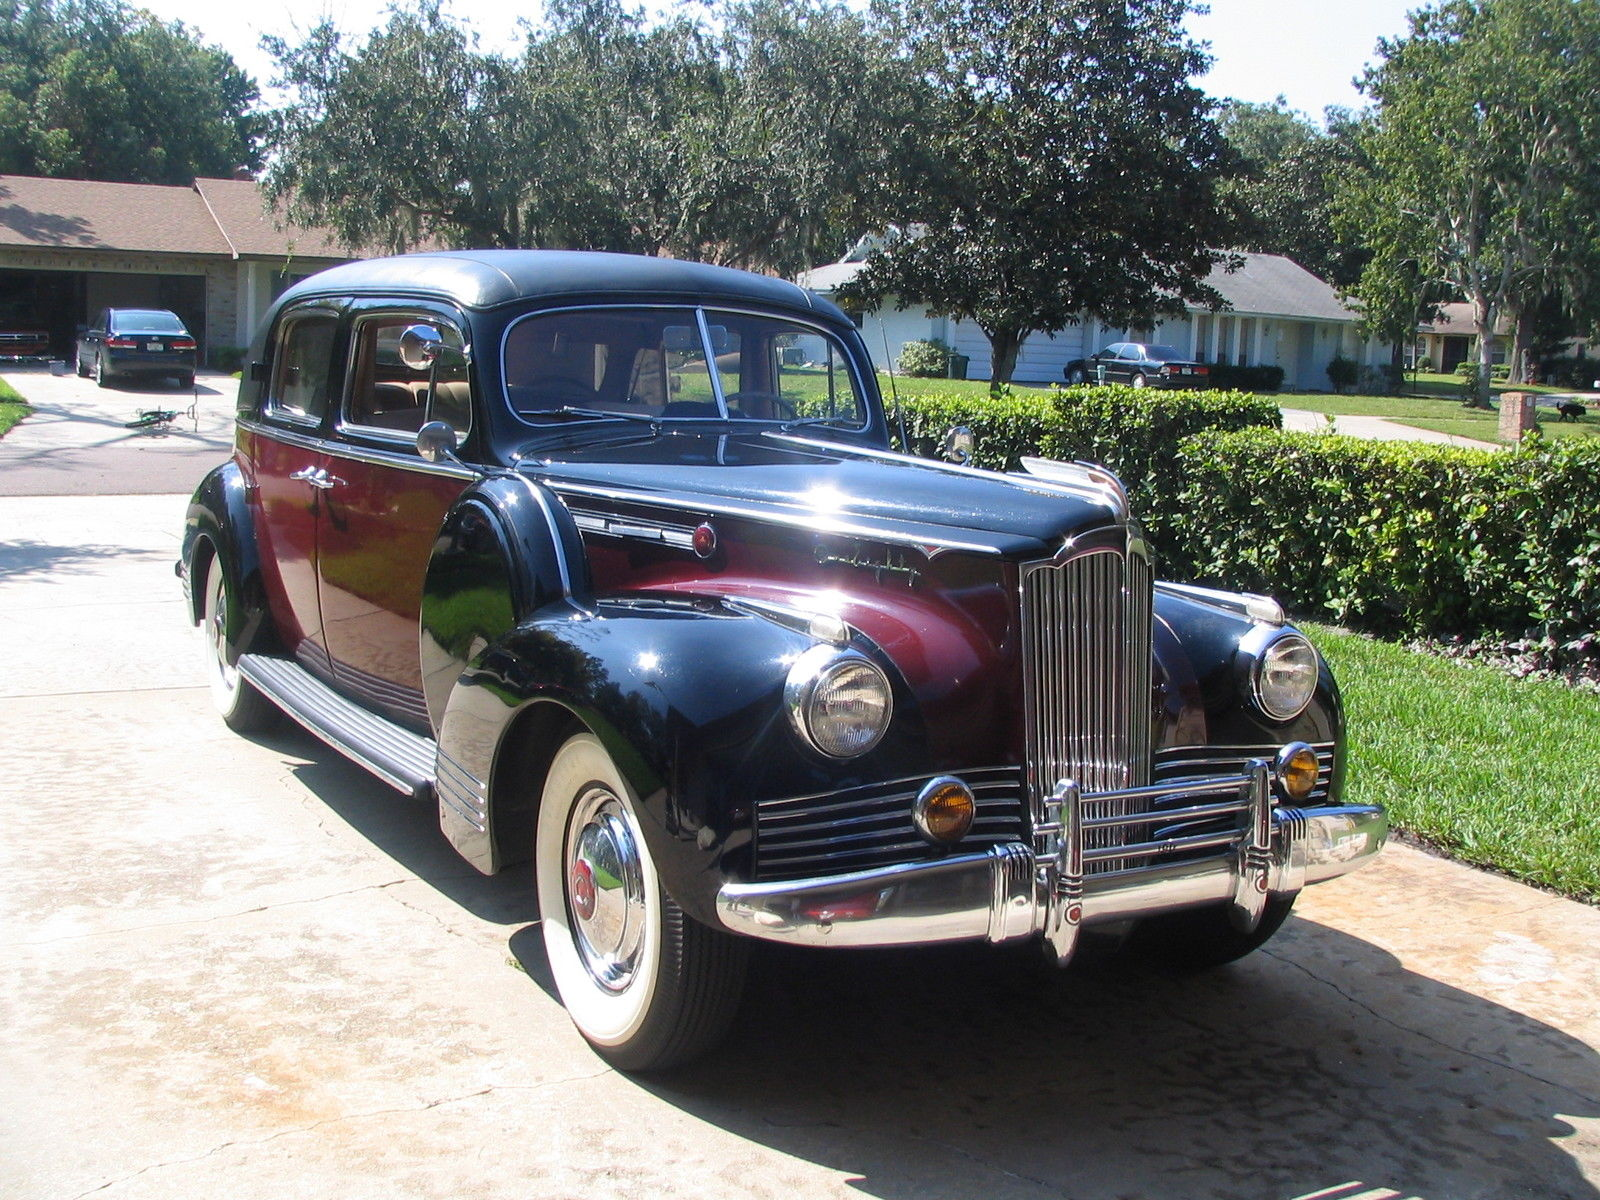 1942 Packard Model 1532 Formal Sedan 6 Passenger